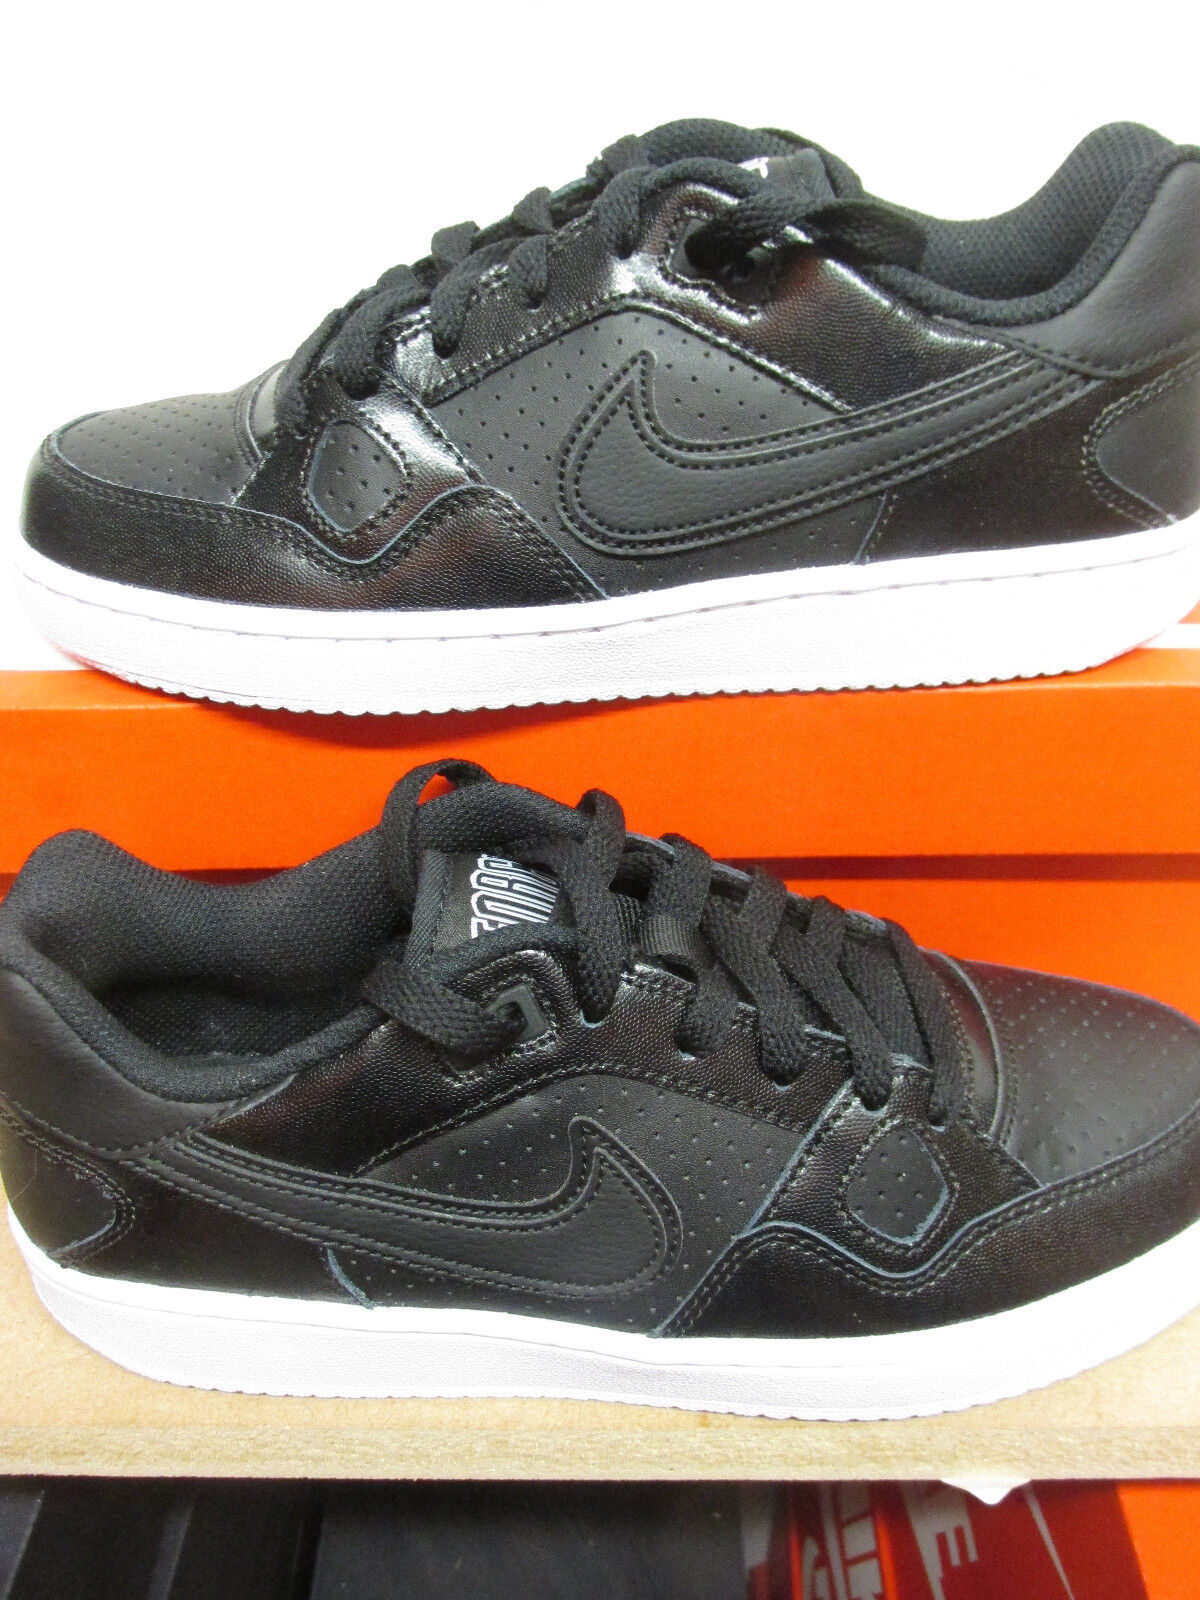 Nike Femmes Montantes Son Of Force Baskets Montantes Femmes 616302 006 Baskets 55ec93